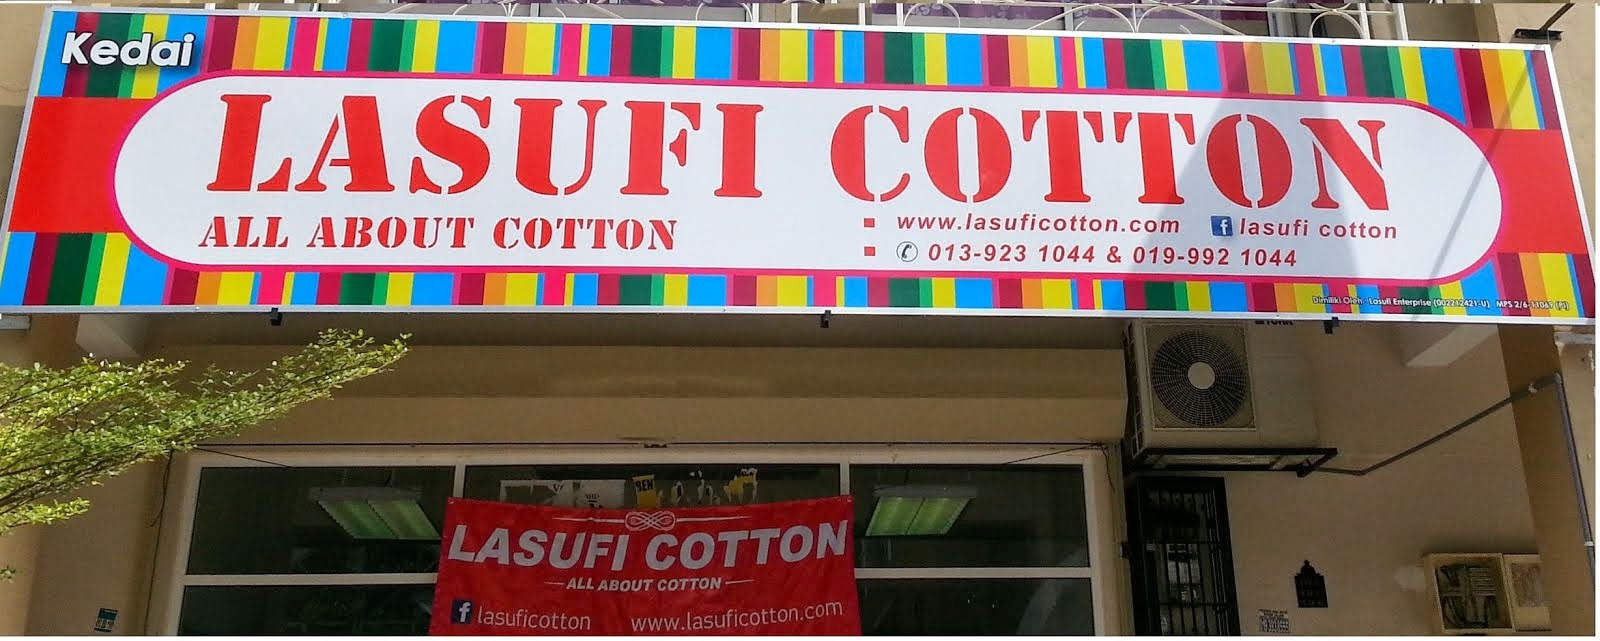 lasufi cotton